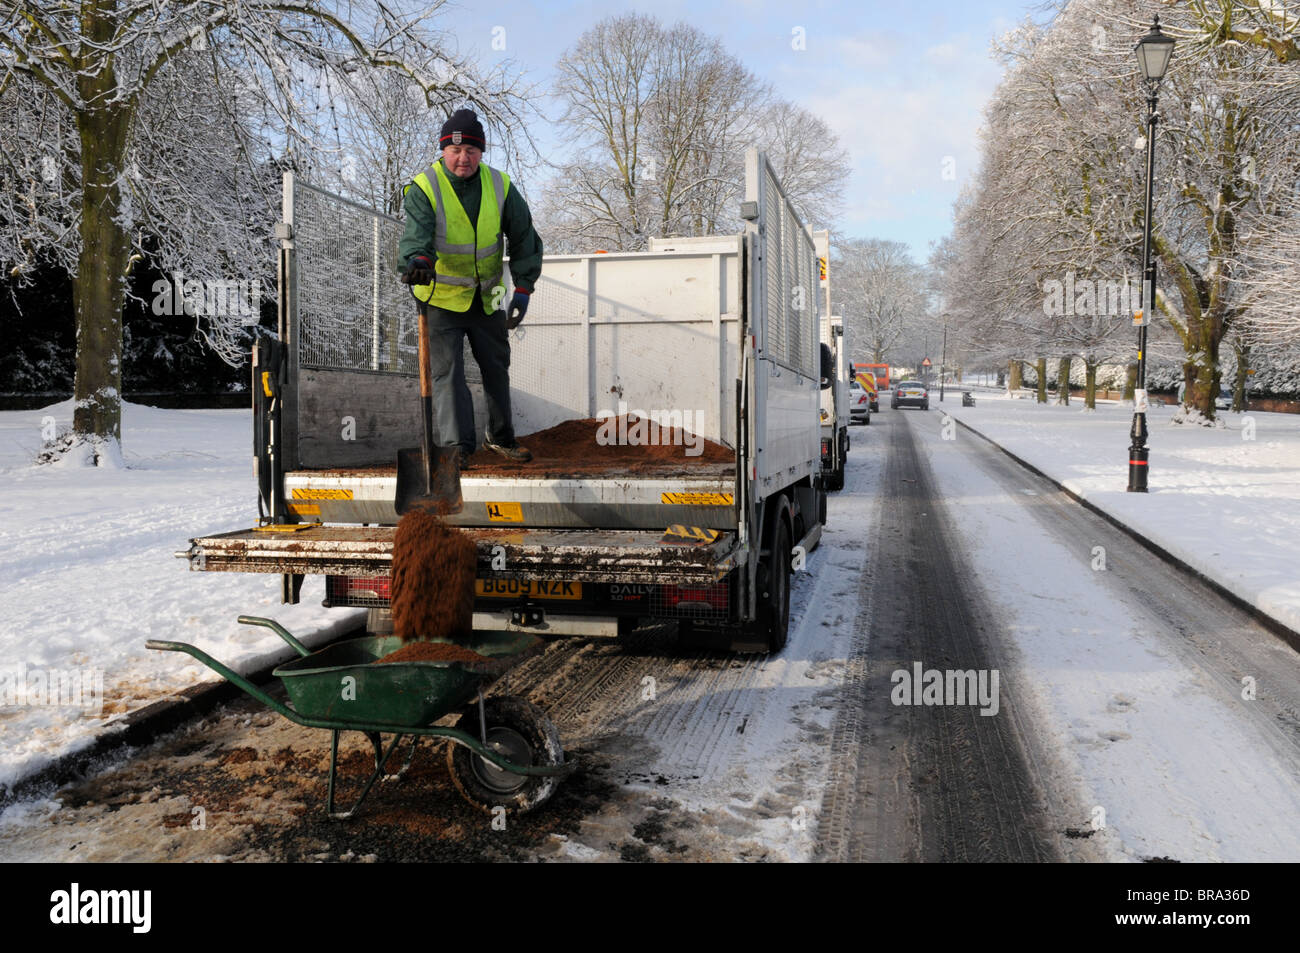 A workman shovels grit from the back of a lorry into a wheelbarrow on a snow-covered road in Tettenhall, Wolverhampton. - Stock Image